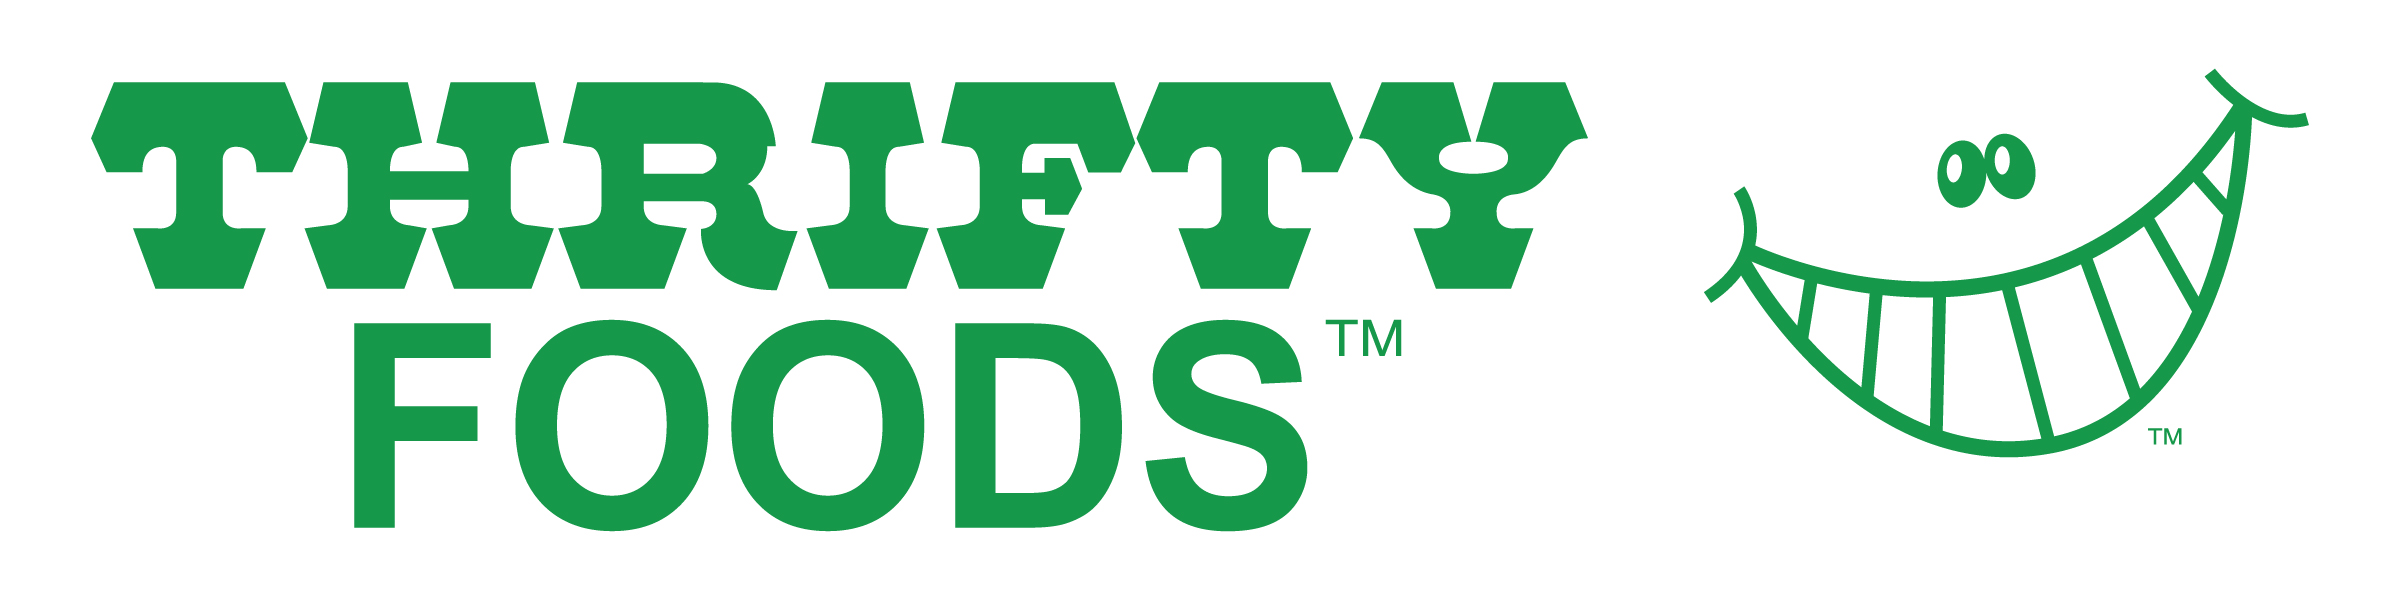 Thrifty Foods Delivery Service